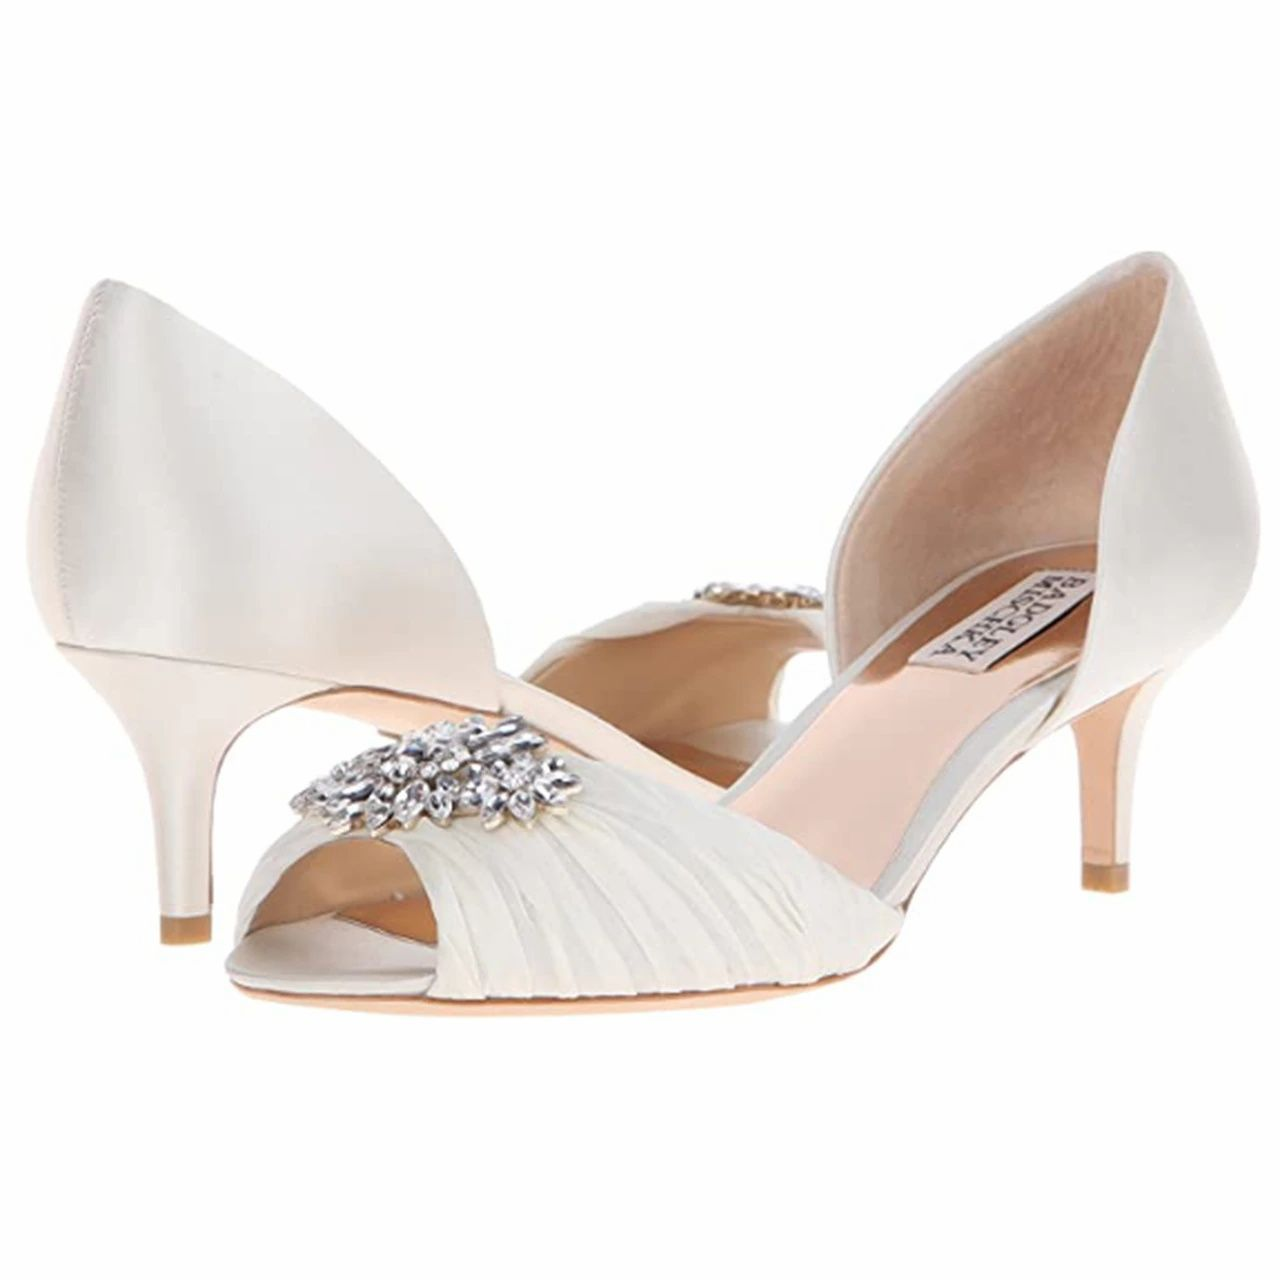 SALE Badgley MIschka Caitlin Bridal Shoes